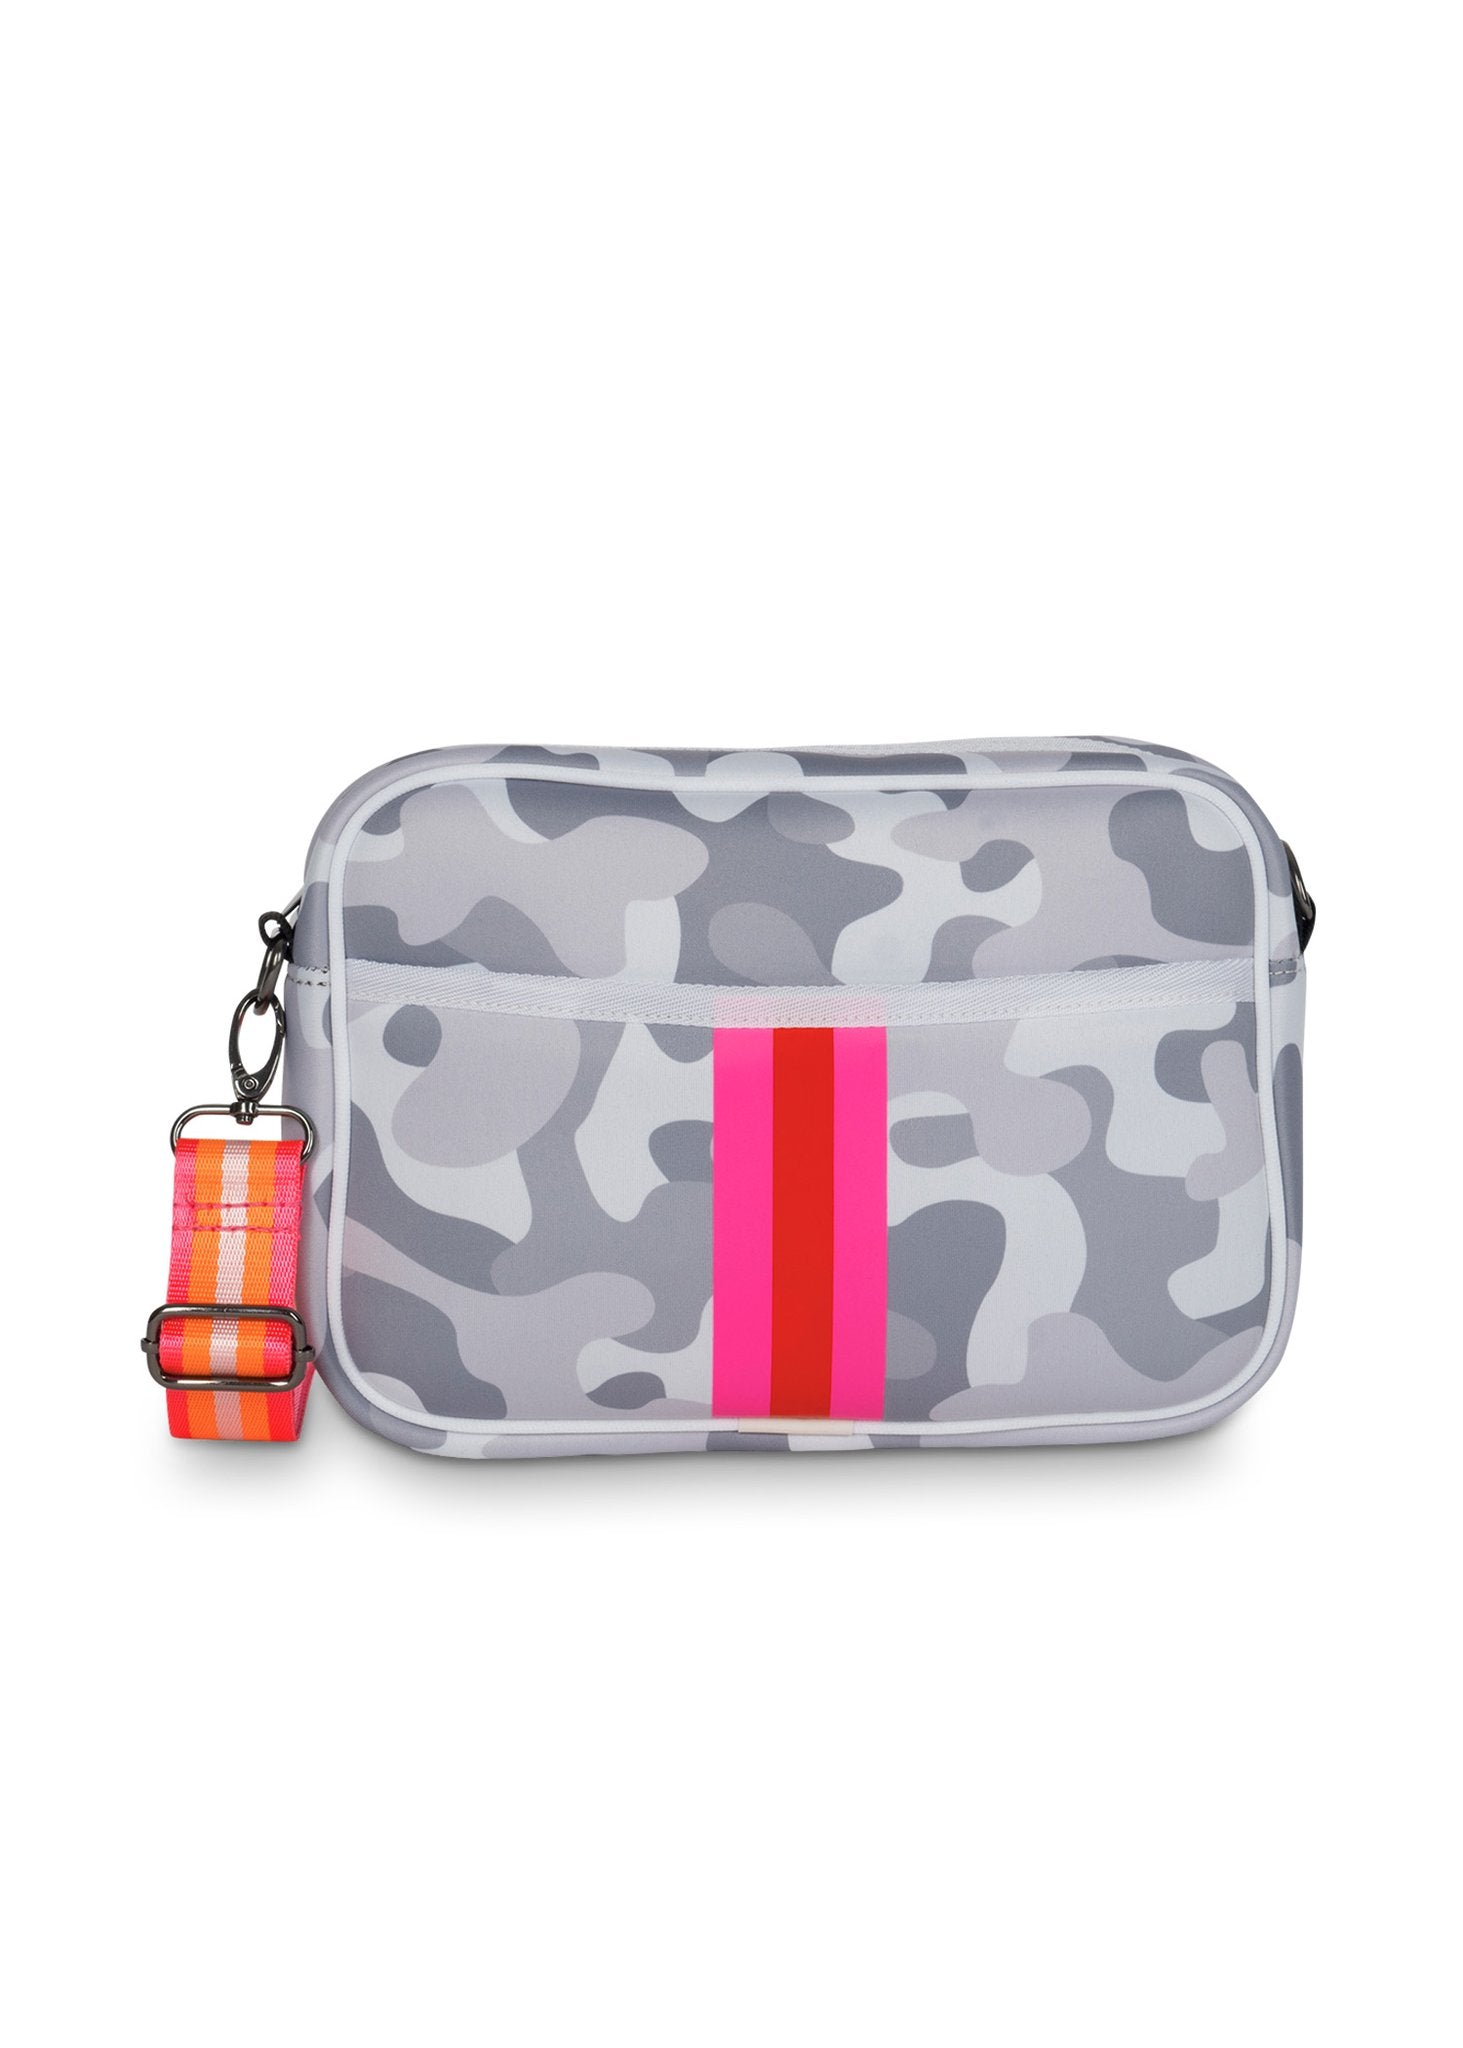 Haute Shore - Drew Rise Crossbody (Drew, Grey Camo w/Pink & Red Stripe)